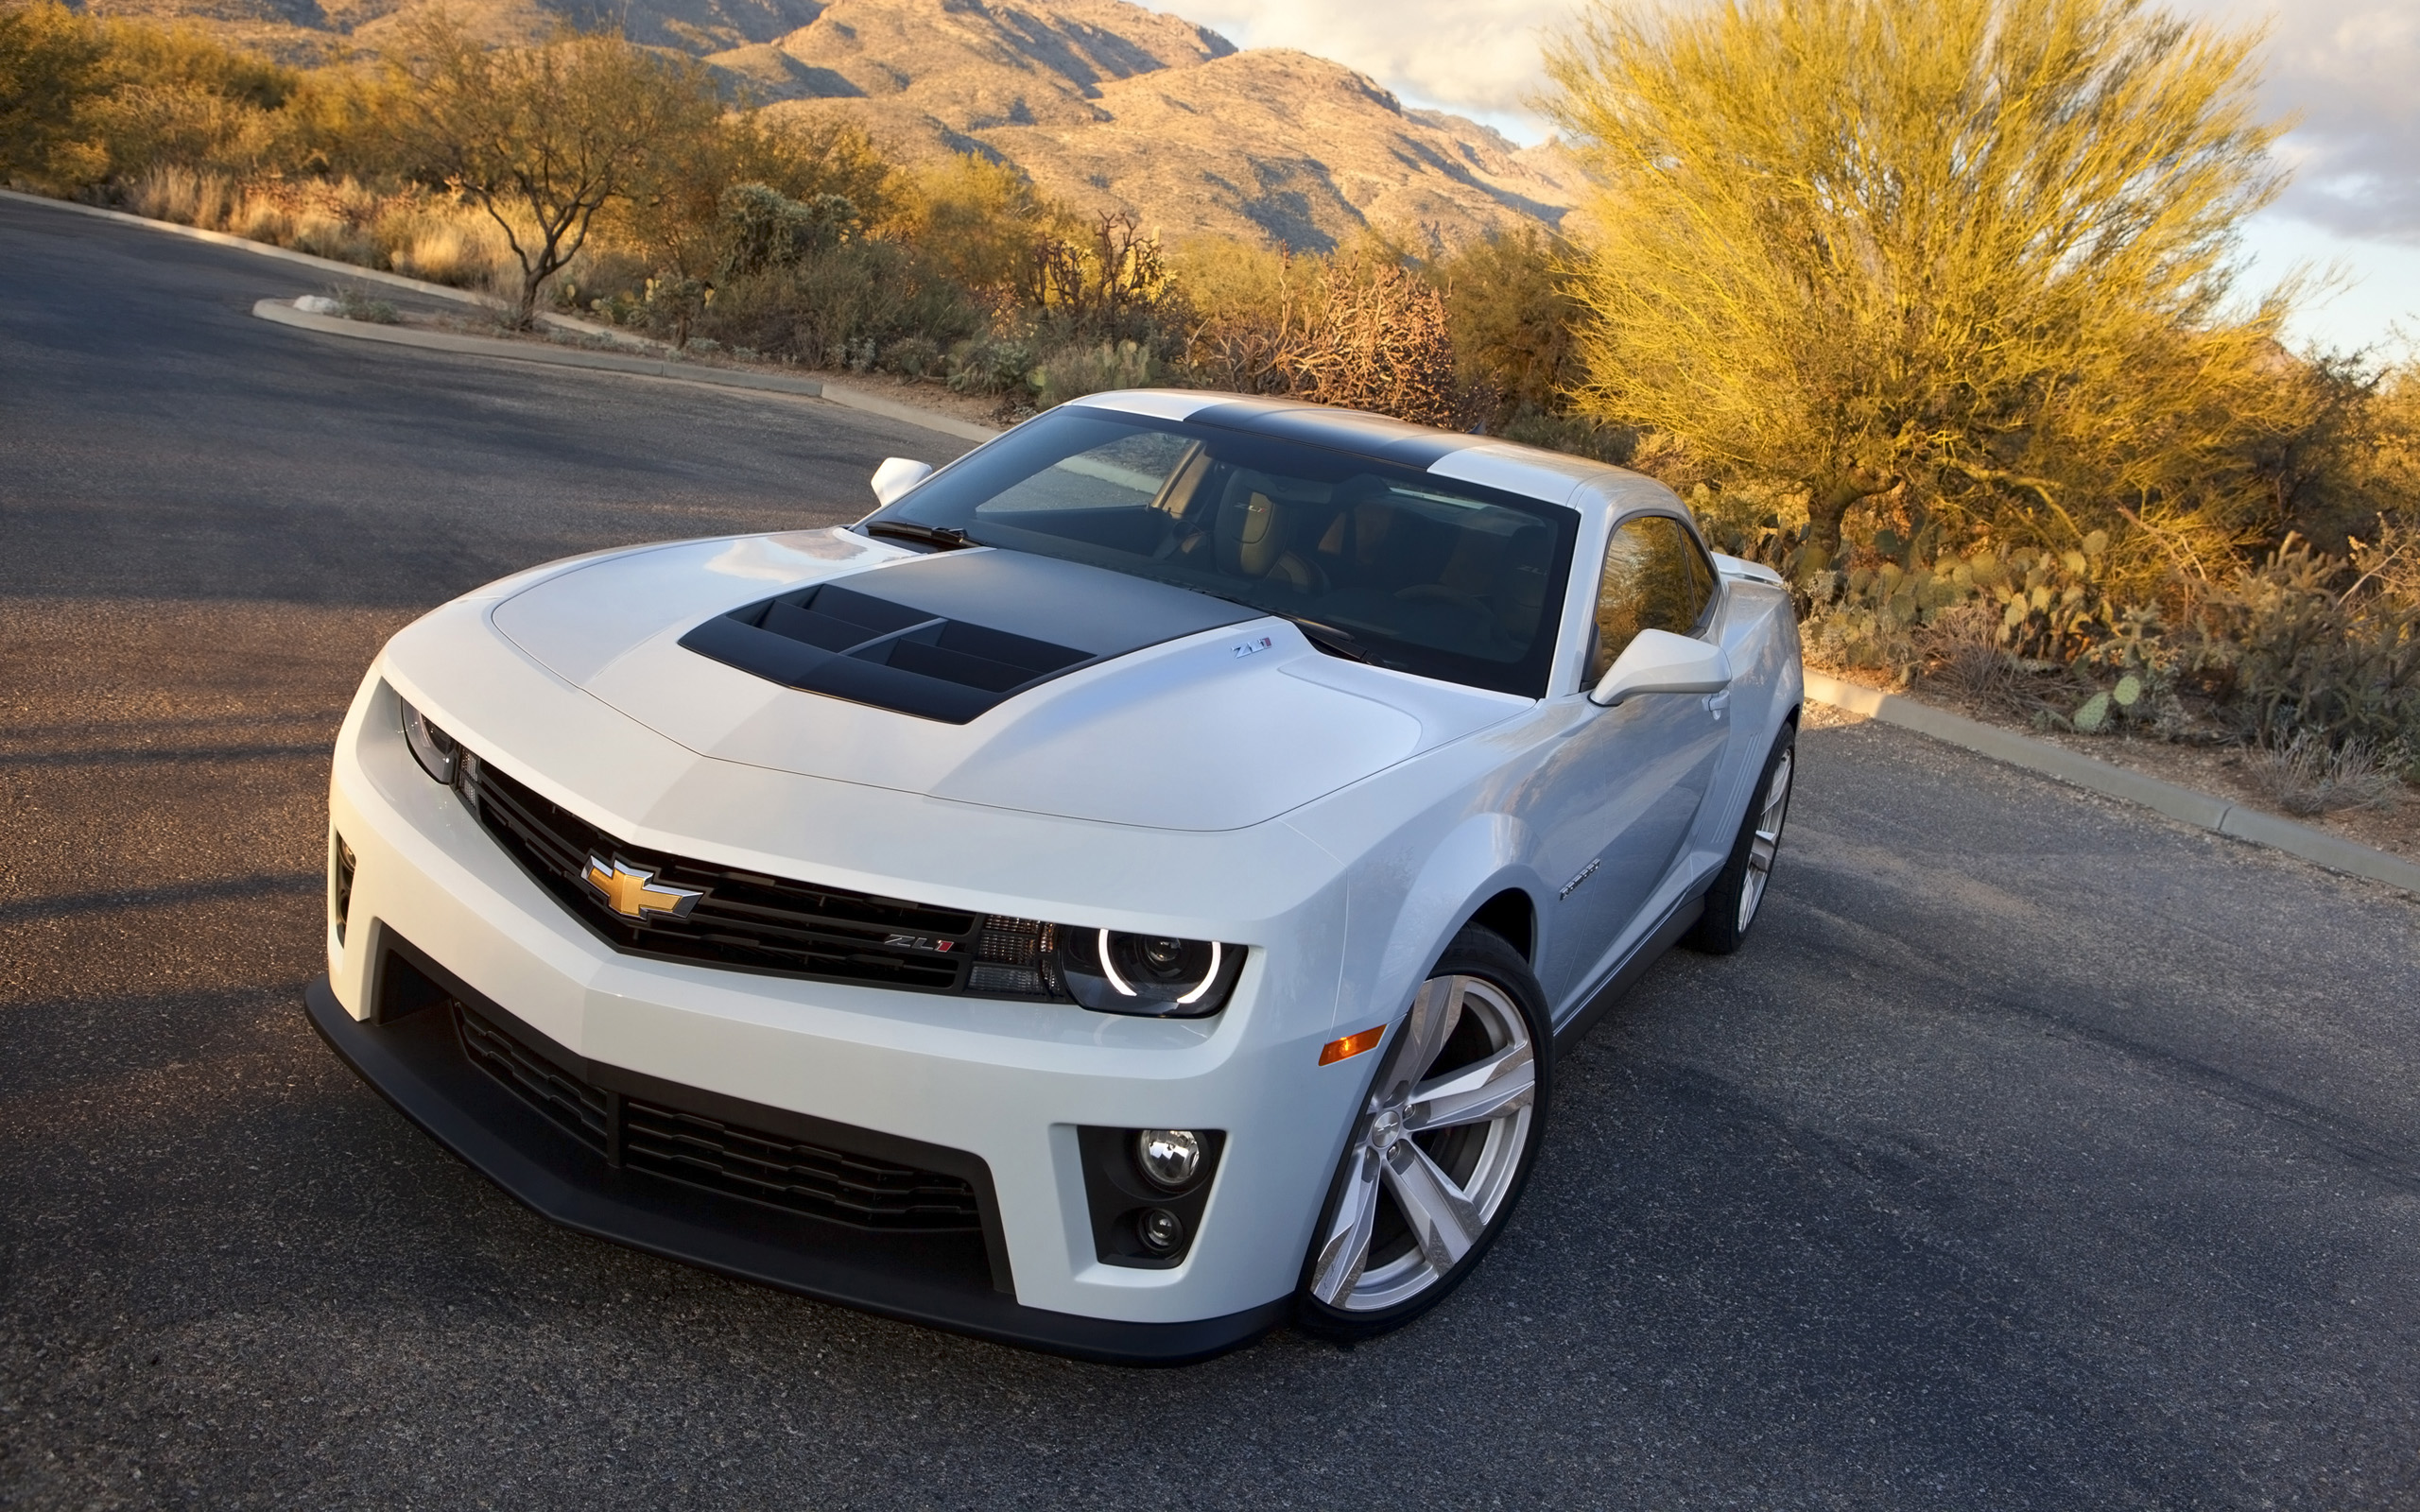 2014 chevrolet camaro zl1 coupe 2 wallpaper hd car - Camaro zl1 ...